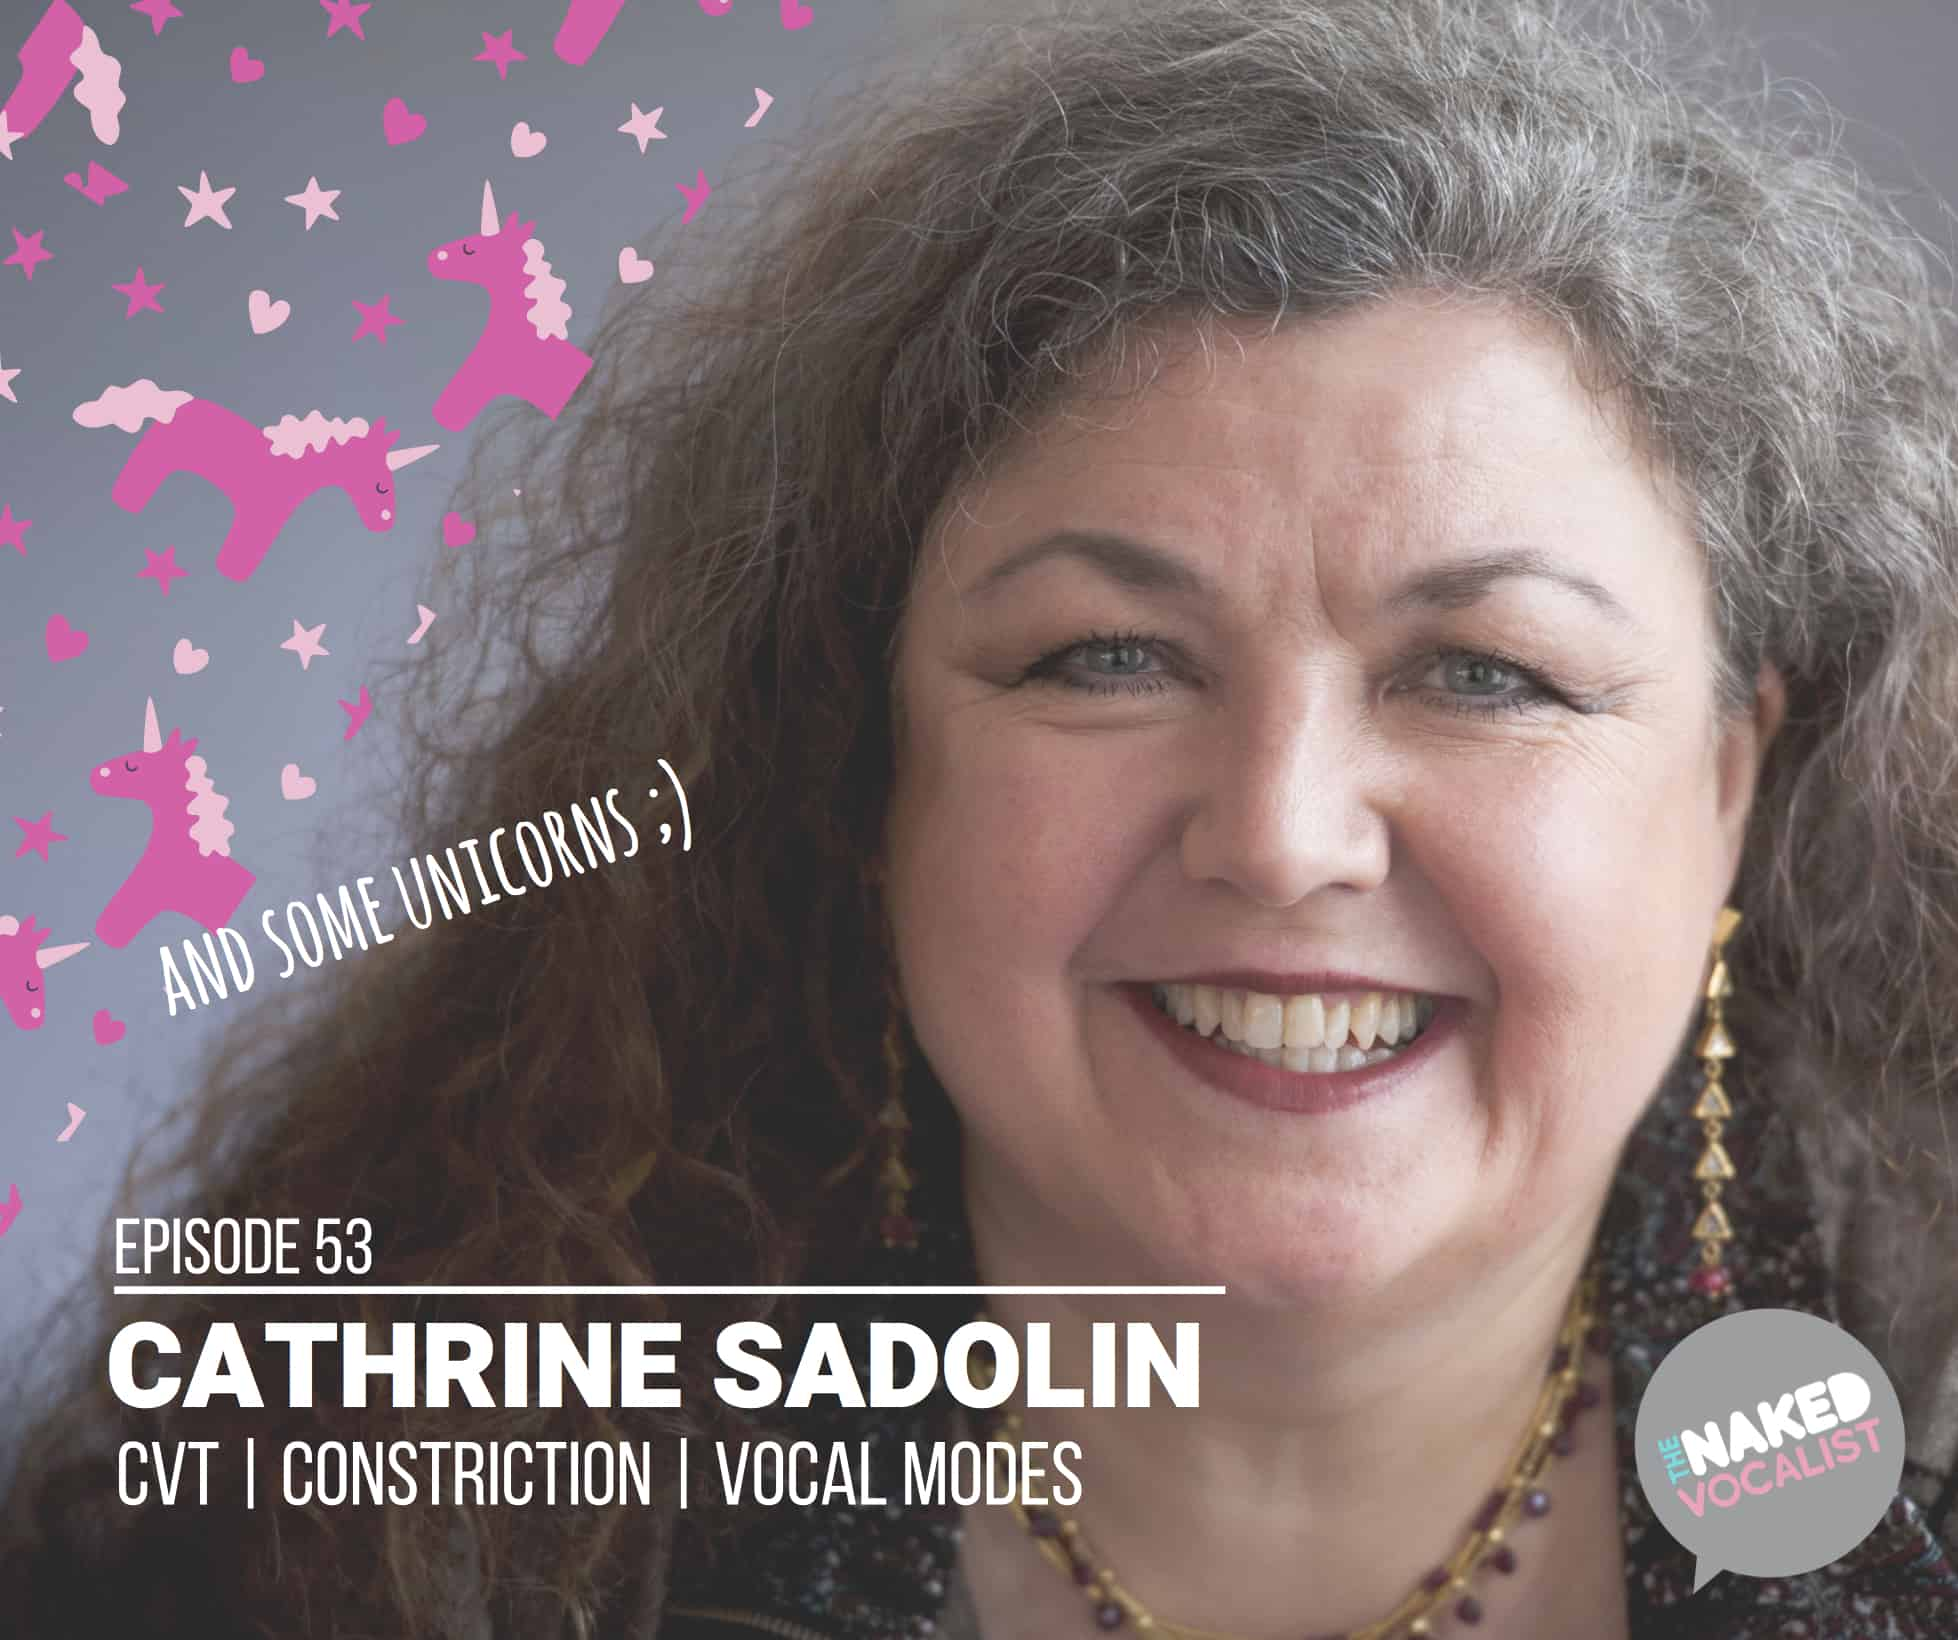 The Naked Vocalist - Cathrine Sadolin